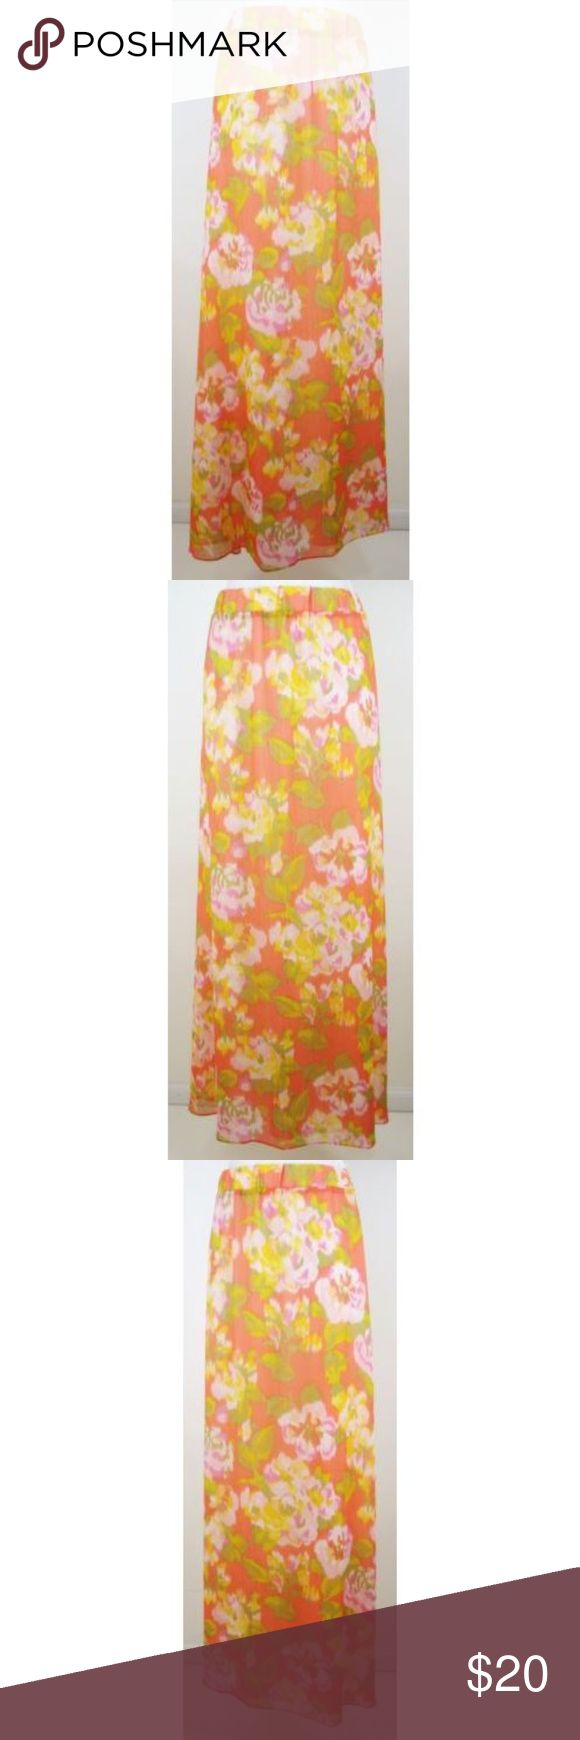 "Skirt Floral Printed Crinkle Modest Long XL 18 20 Isaac Mizrahi Live!  Excellent ""Gently Worn"" Condition: No rips, stains, tears or other signs of wear  Tagged as Size XL  Various shades of Orange, Pink, Yellow and Green  Waistband Measures 38"" - 42"" Hips Measure 54"" (approximately 6"" below waistband) Length Measures 39½"" (from top of waistband to back hem) Hem Measures 85"" (around garment at hem)  Wide band elasticized pull-on waistband  Shell: 100% Polyester Lining: 95% Polyester, 5%…"